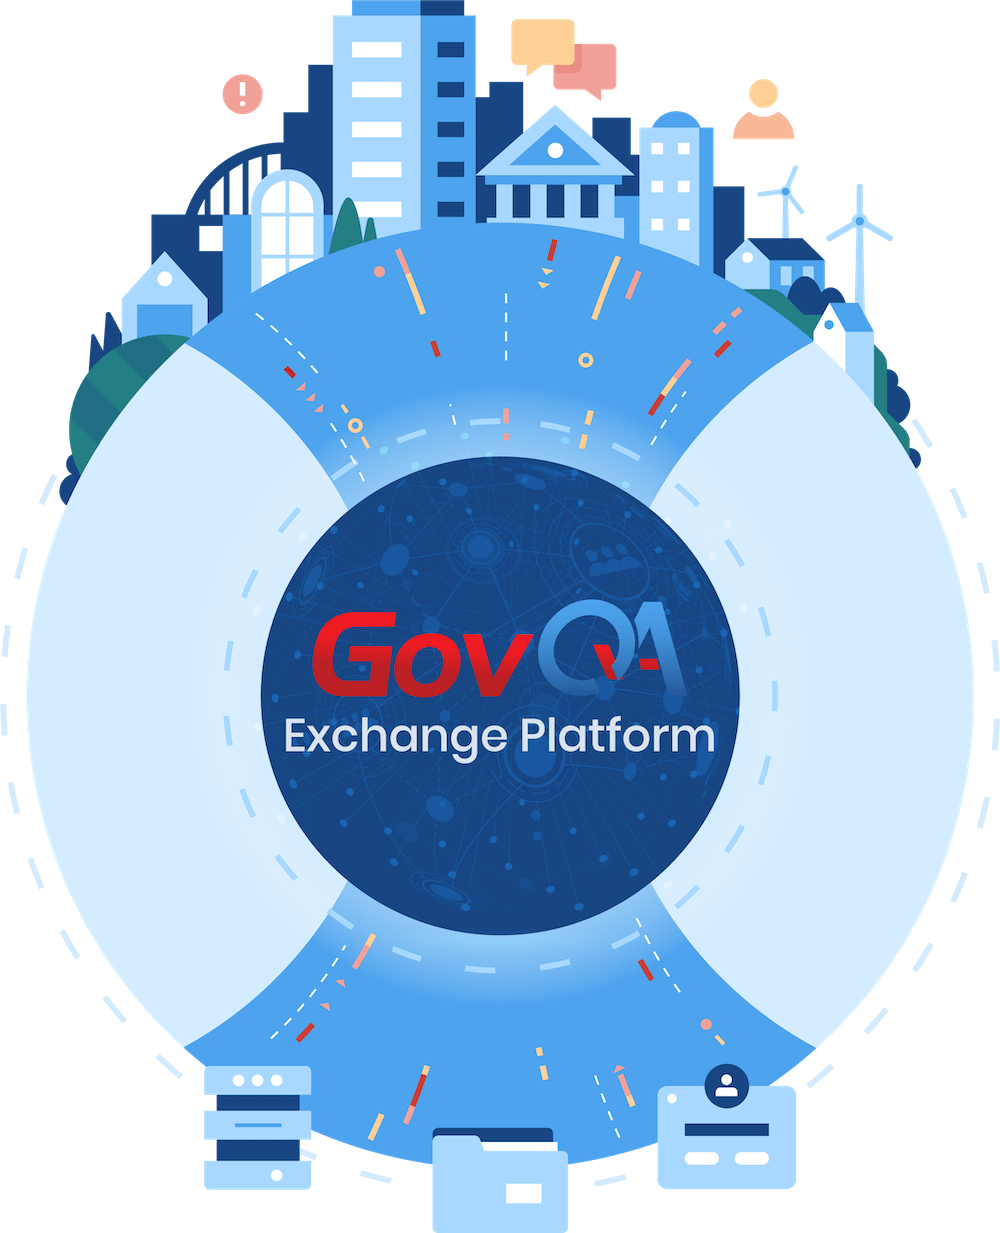 GovQA Exchange platform illustration